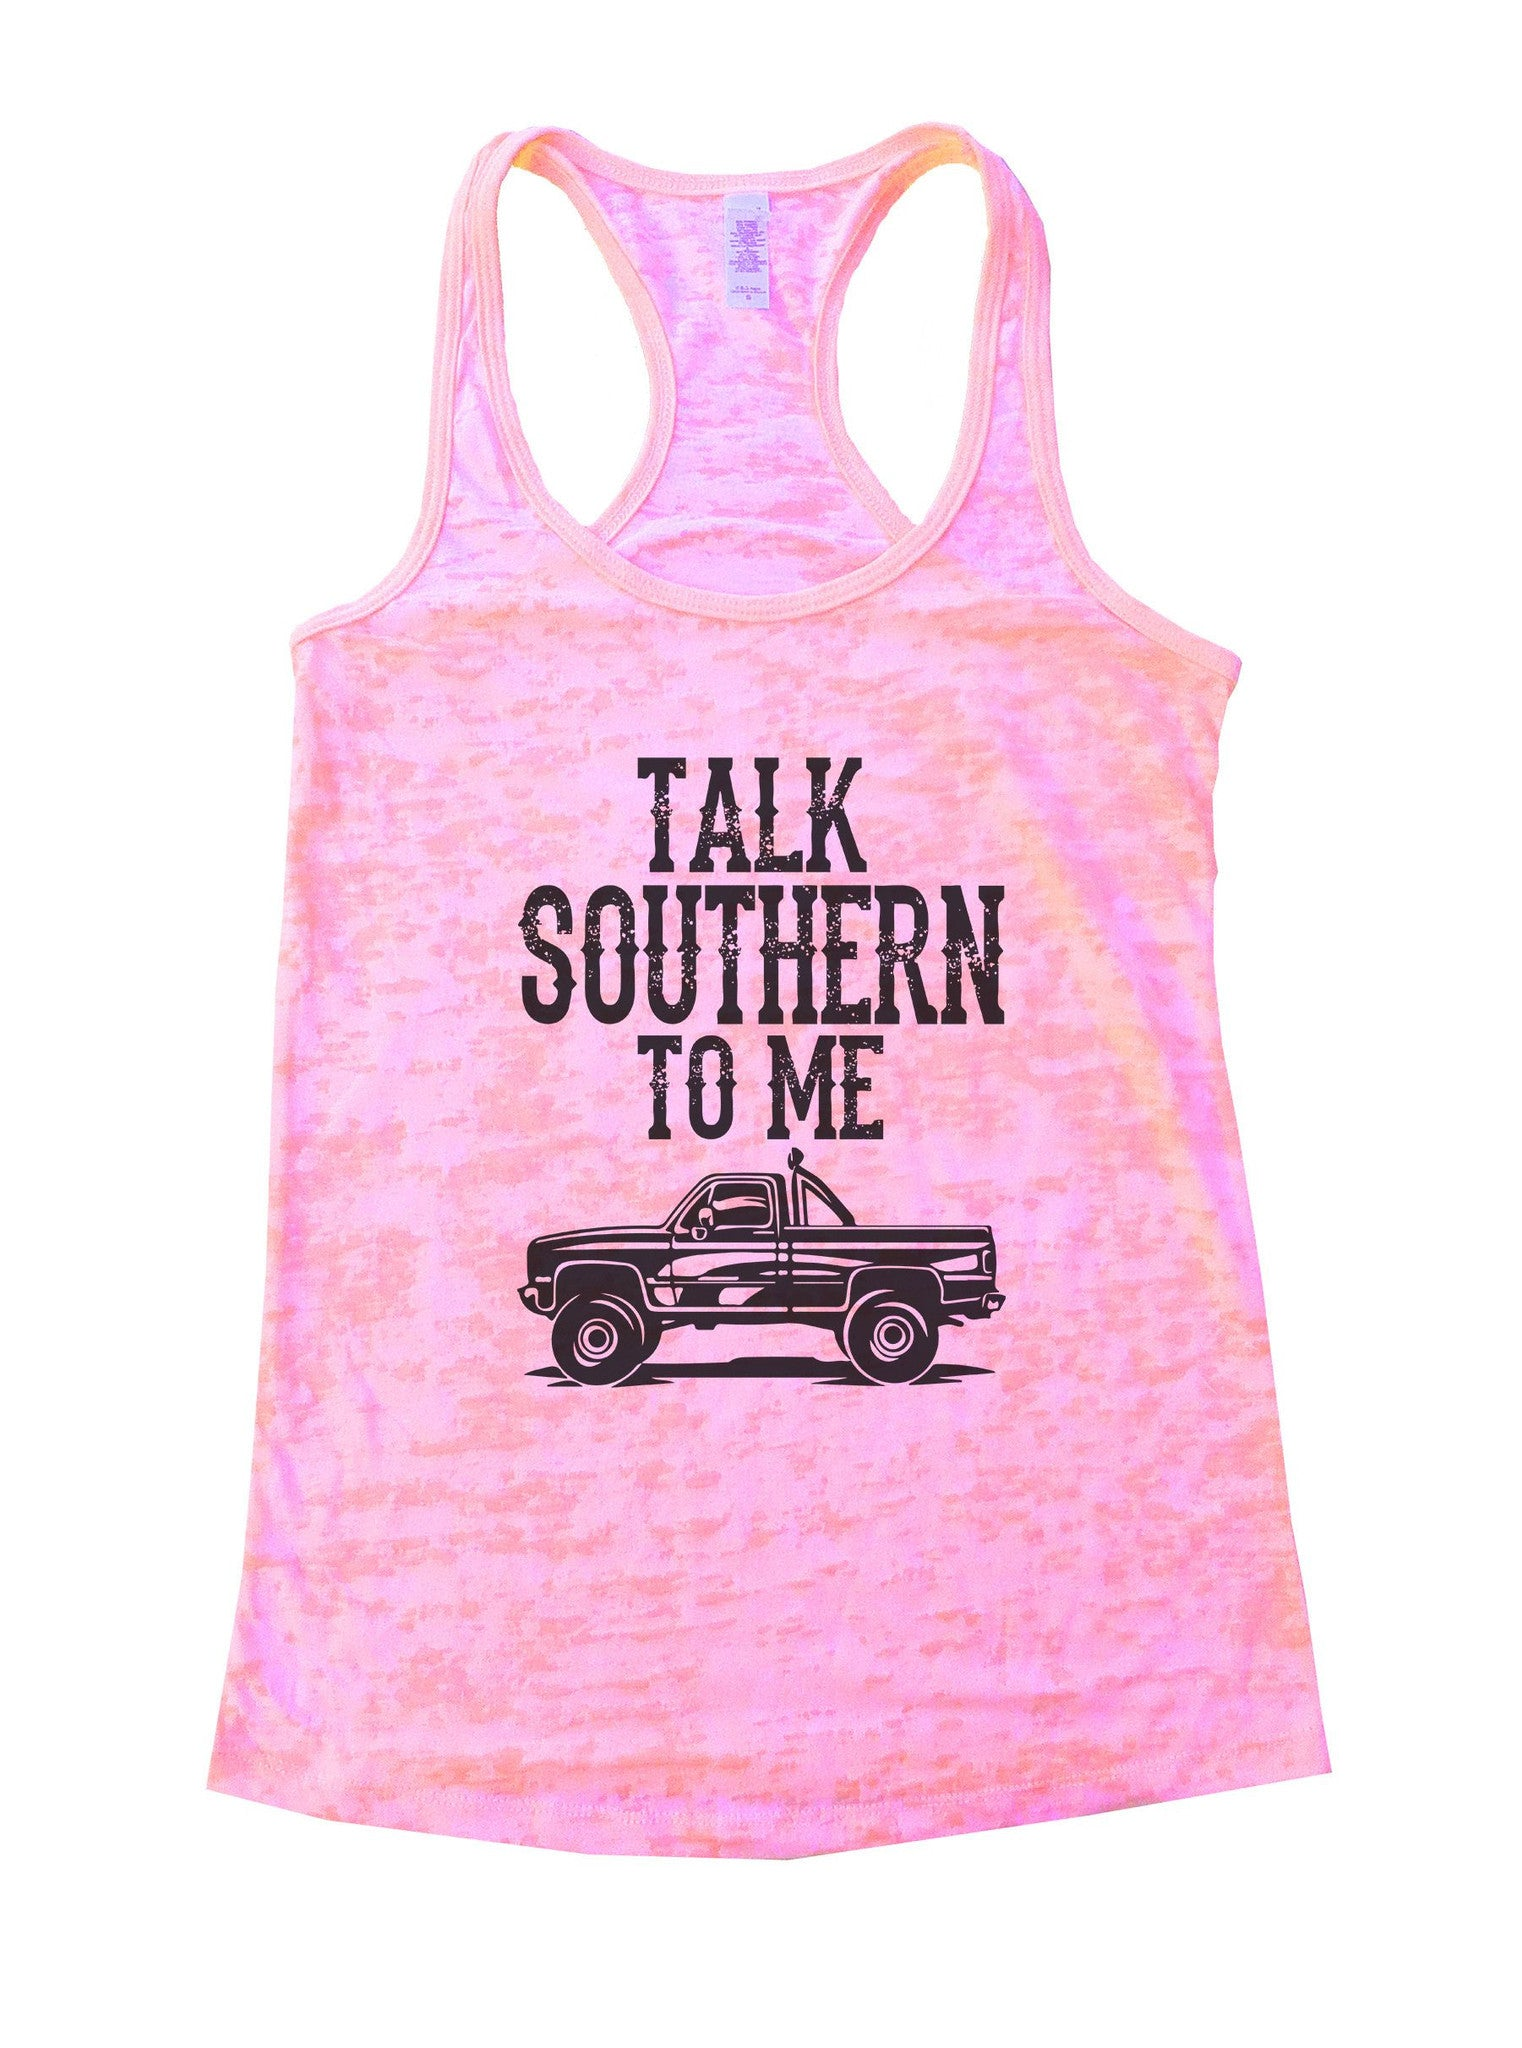 Talk Southern To Me Burnout Tank Top By BurnoutTankTops.com - 1010 - Funny Shirts Tank Tops Burnouts and Triblends  - 2